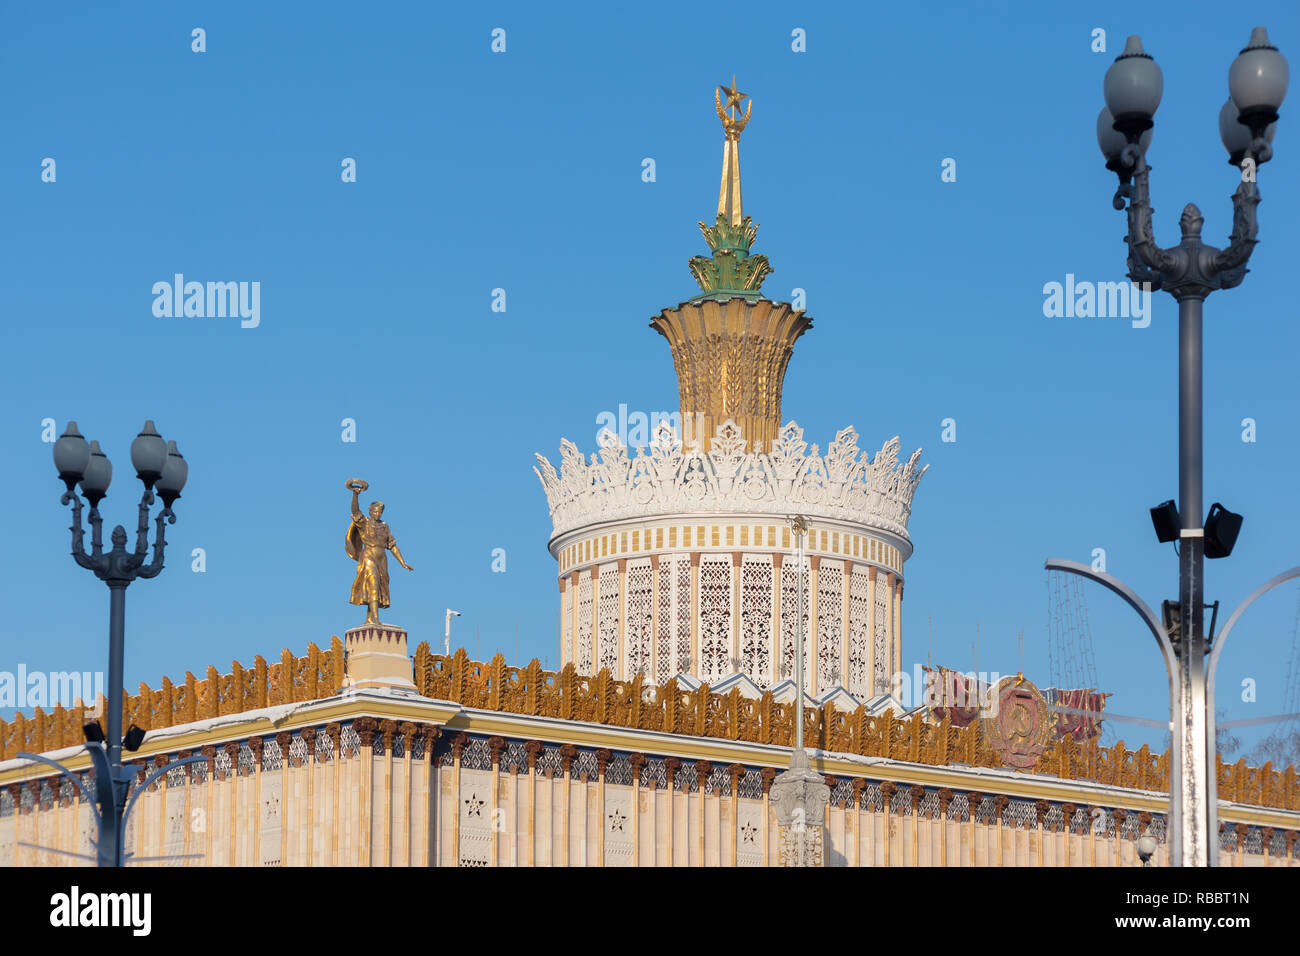 VDNKh complex in Moscow: Spire atop of the Ukraine Pavilion Stock Photo